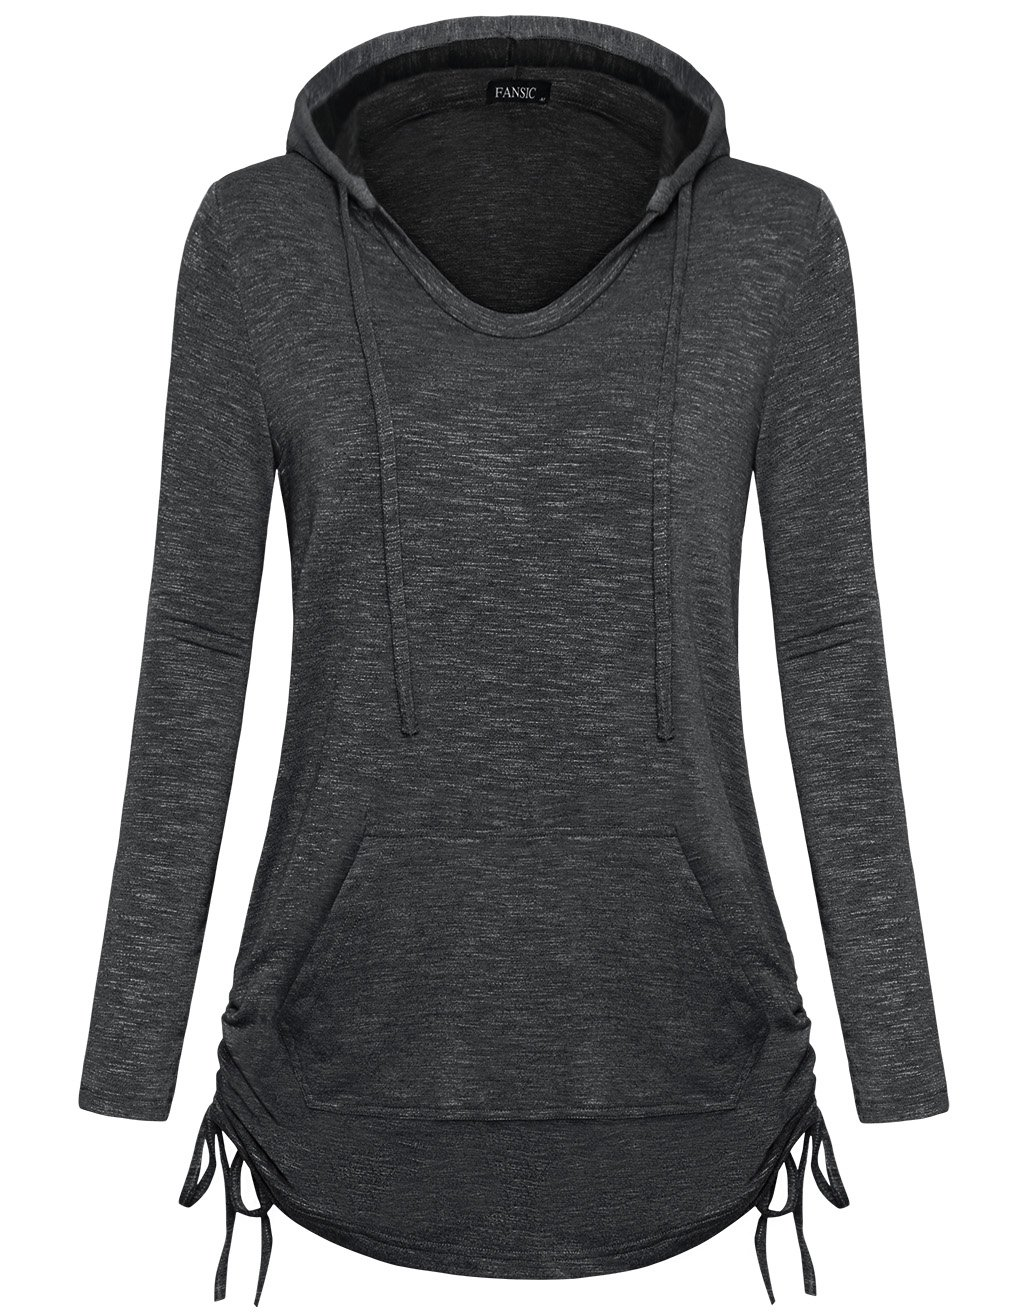 Women Hoodie Sweatshirt,FANSIC Women's Boutique Clothes Business Casual Tops for Women Pullover Sweatshirt Hoodie with Kangaroo Pocket Small Gray